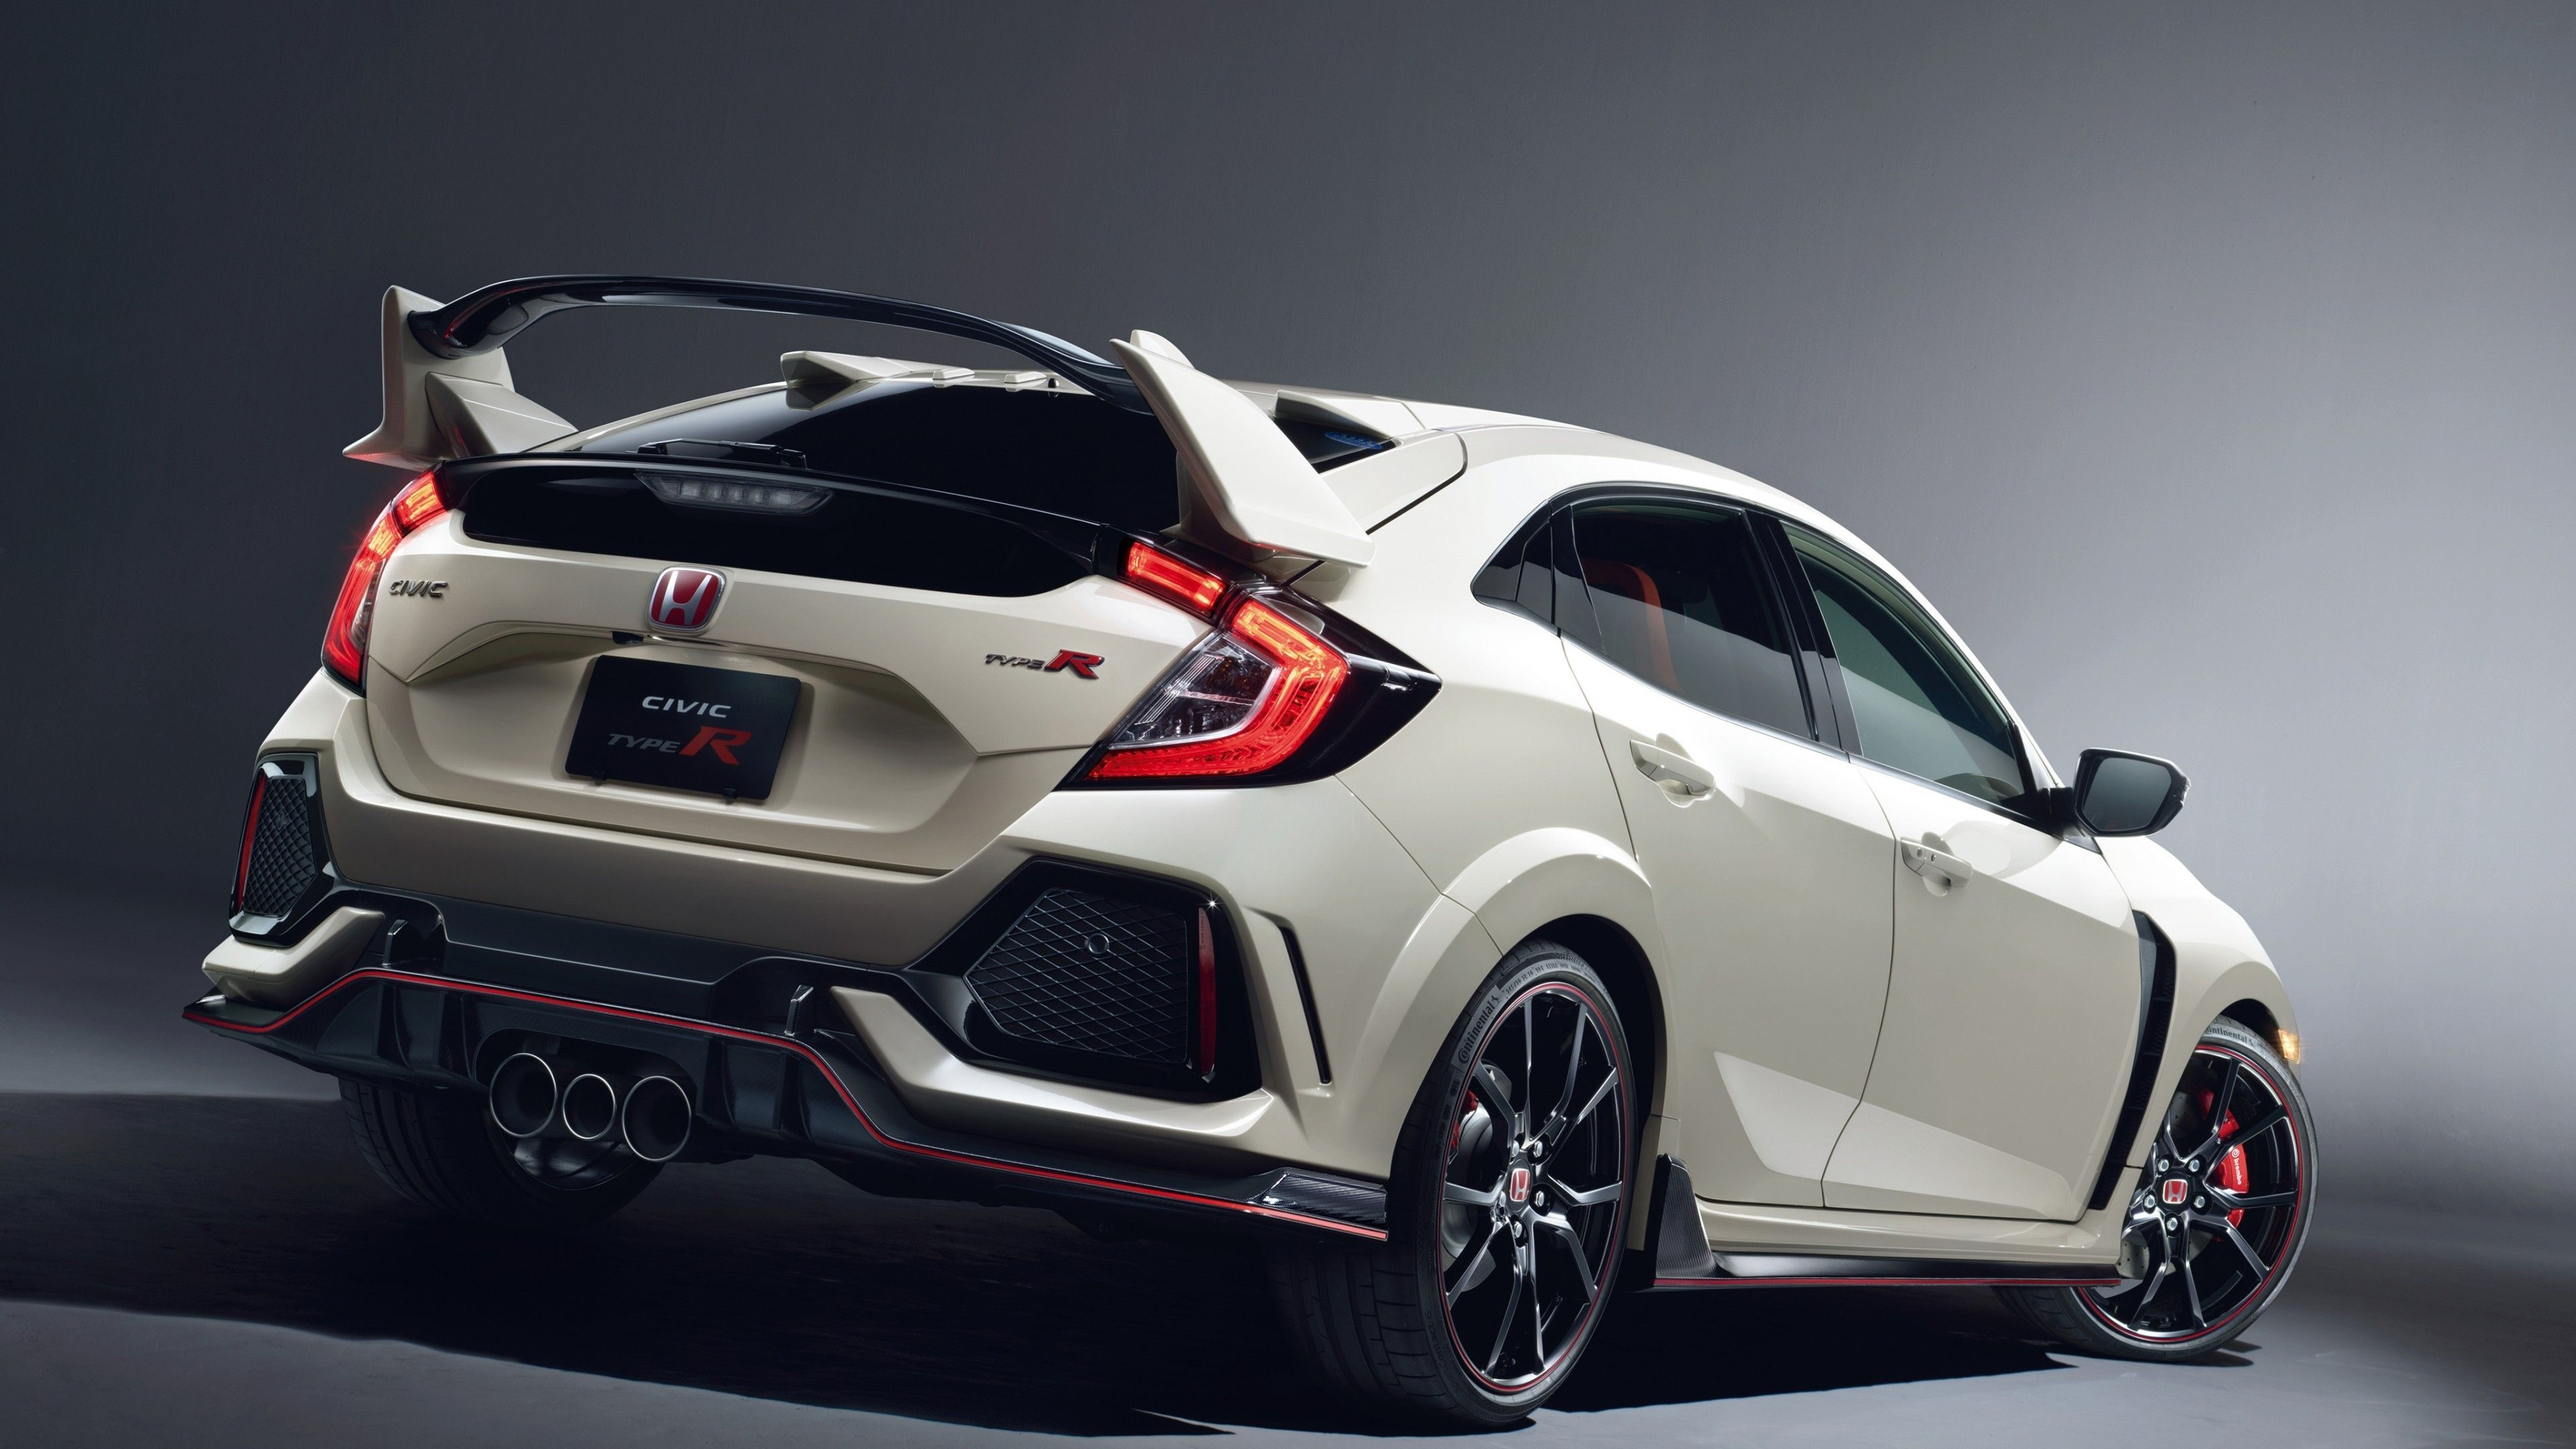 The Best Honda Cars Modified 53 in 2020 Honda civic type